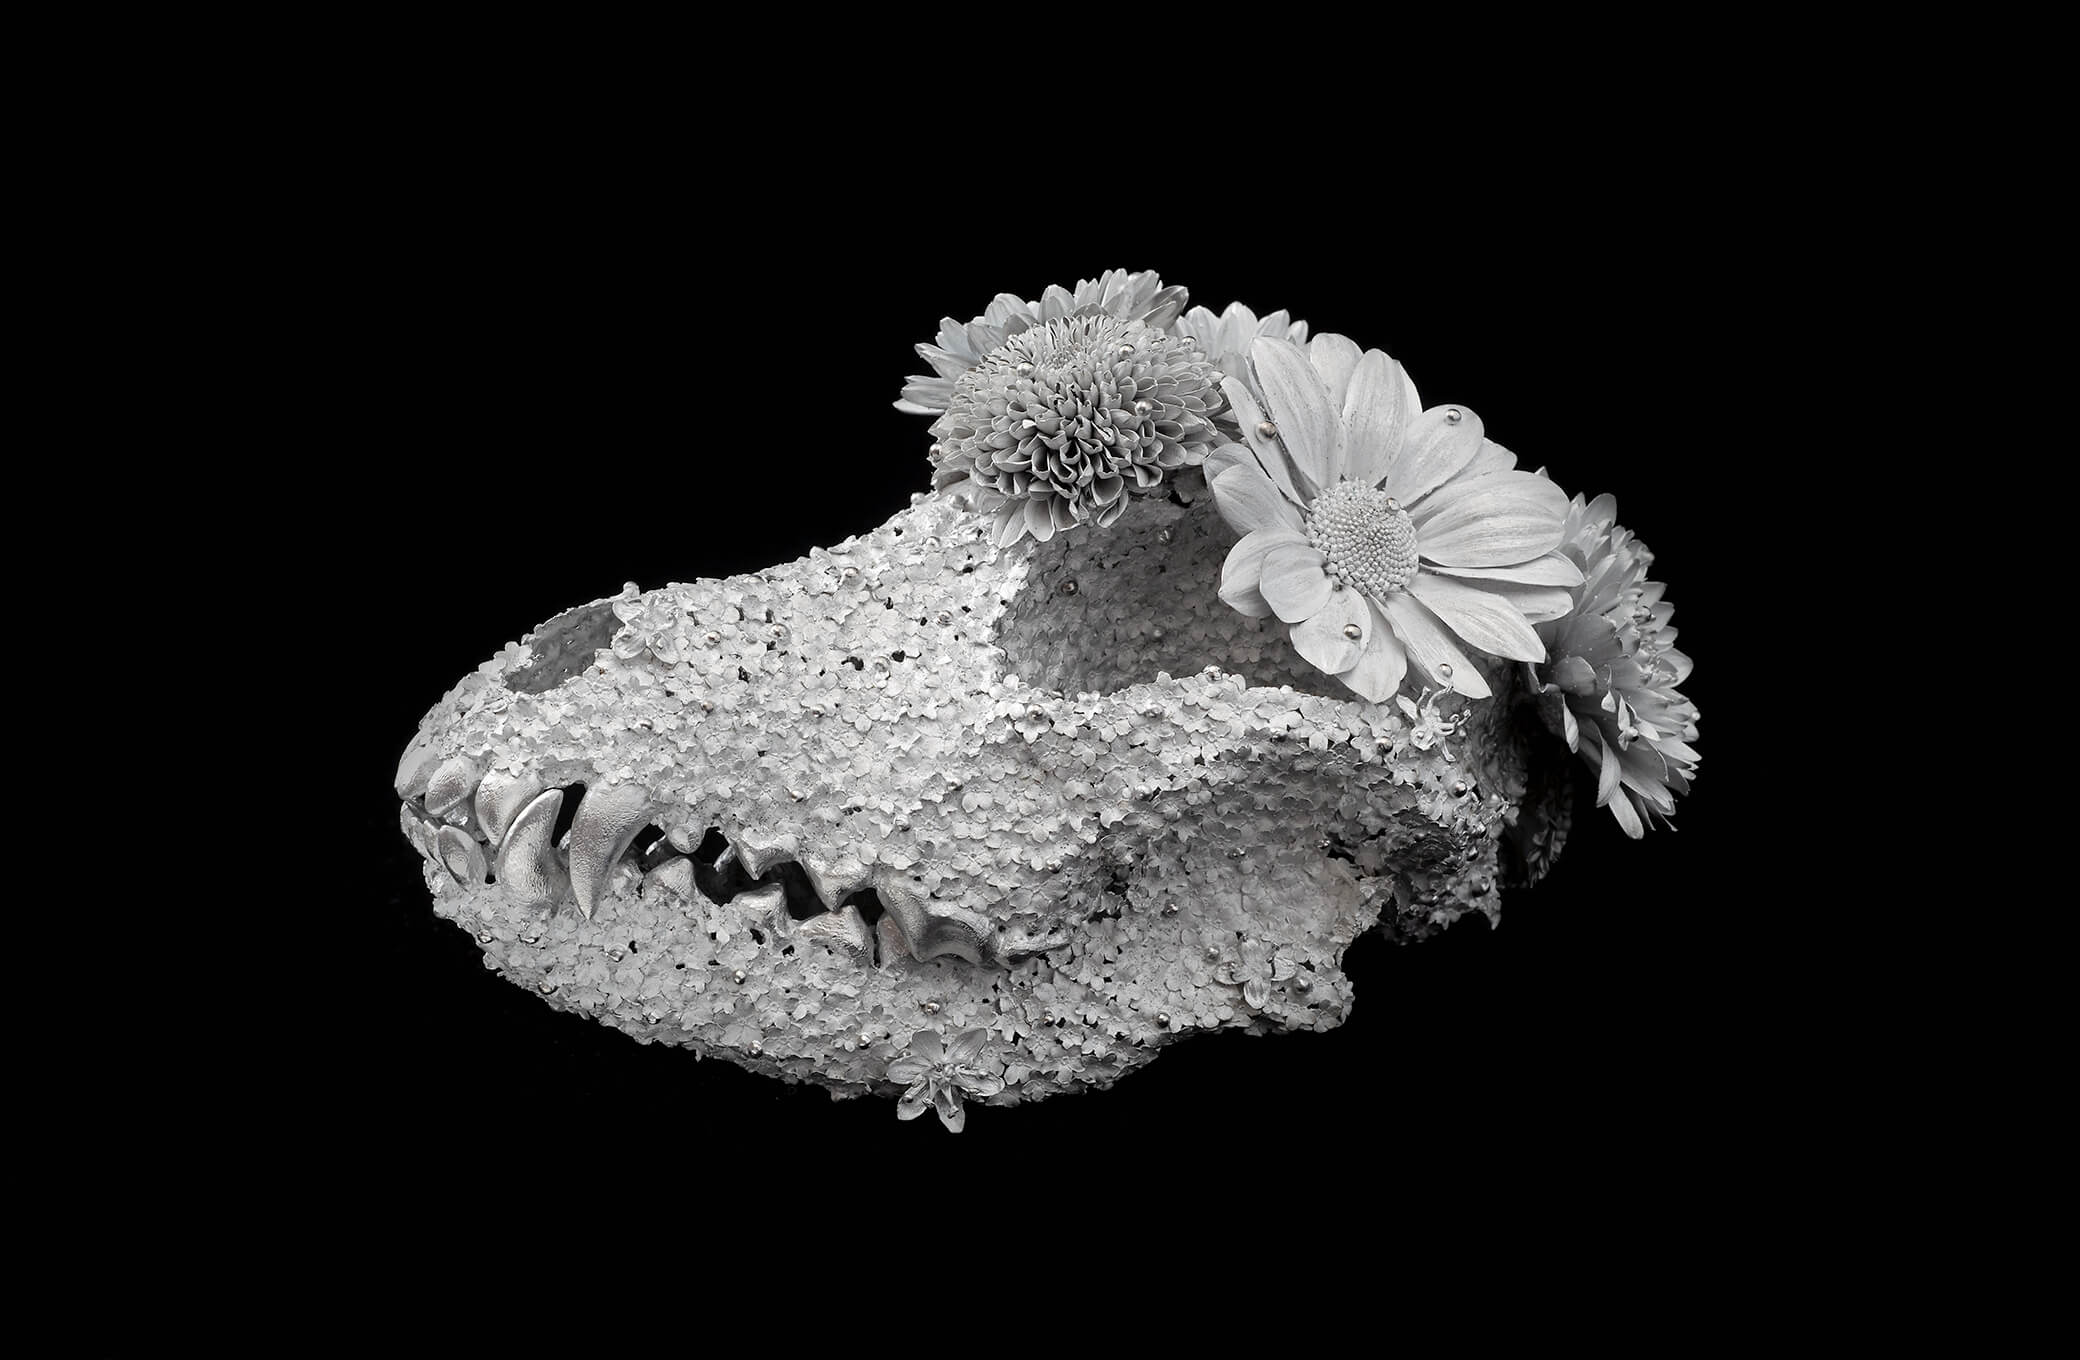 Kengo Takahashi, Flower Funeral - Airedale-, 2018